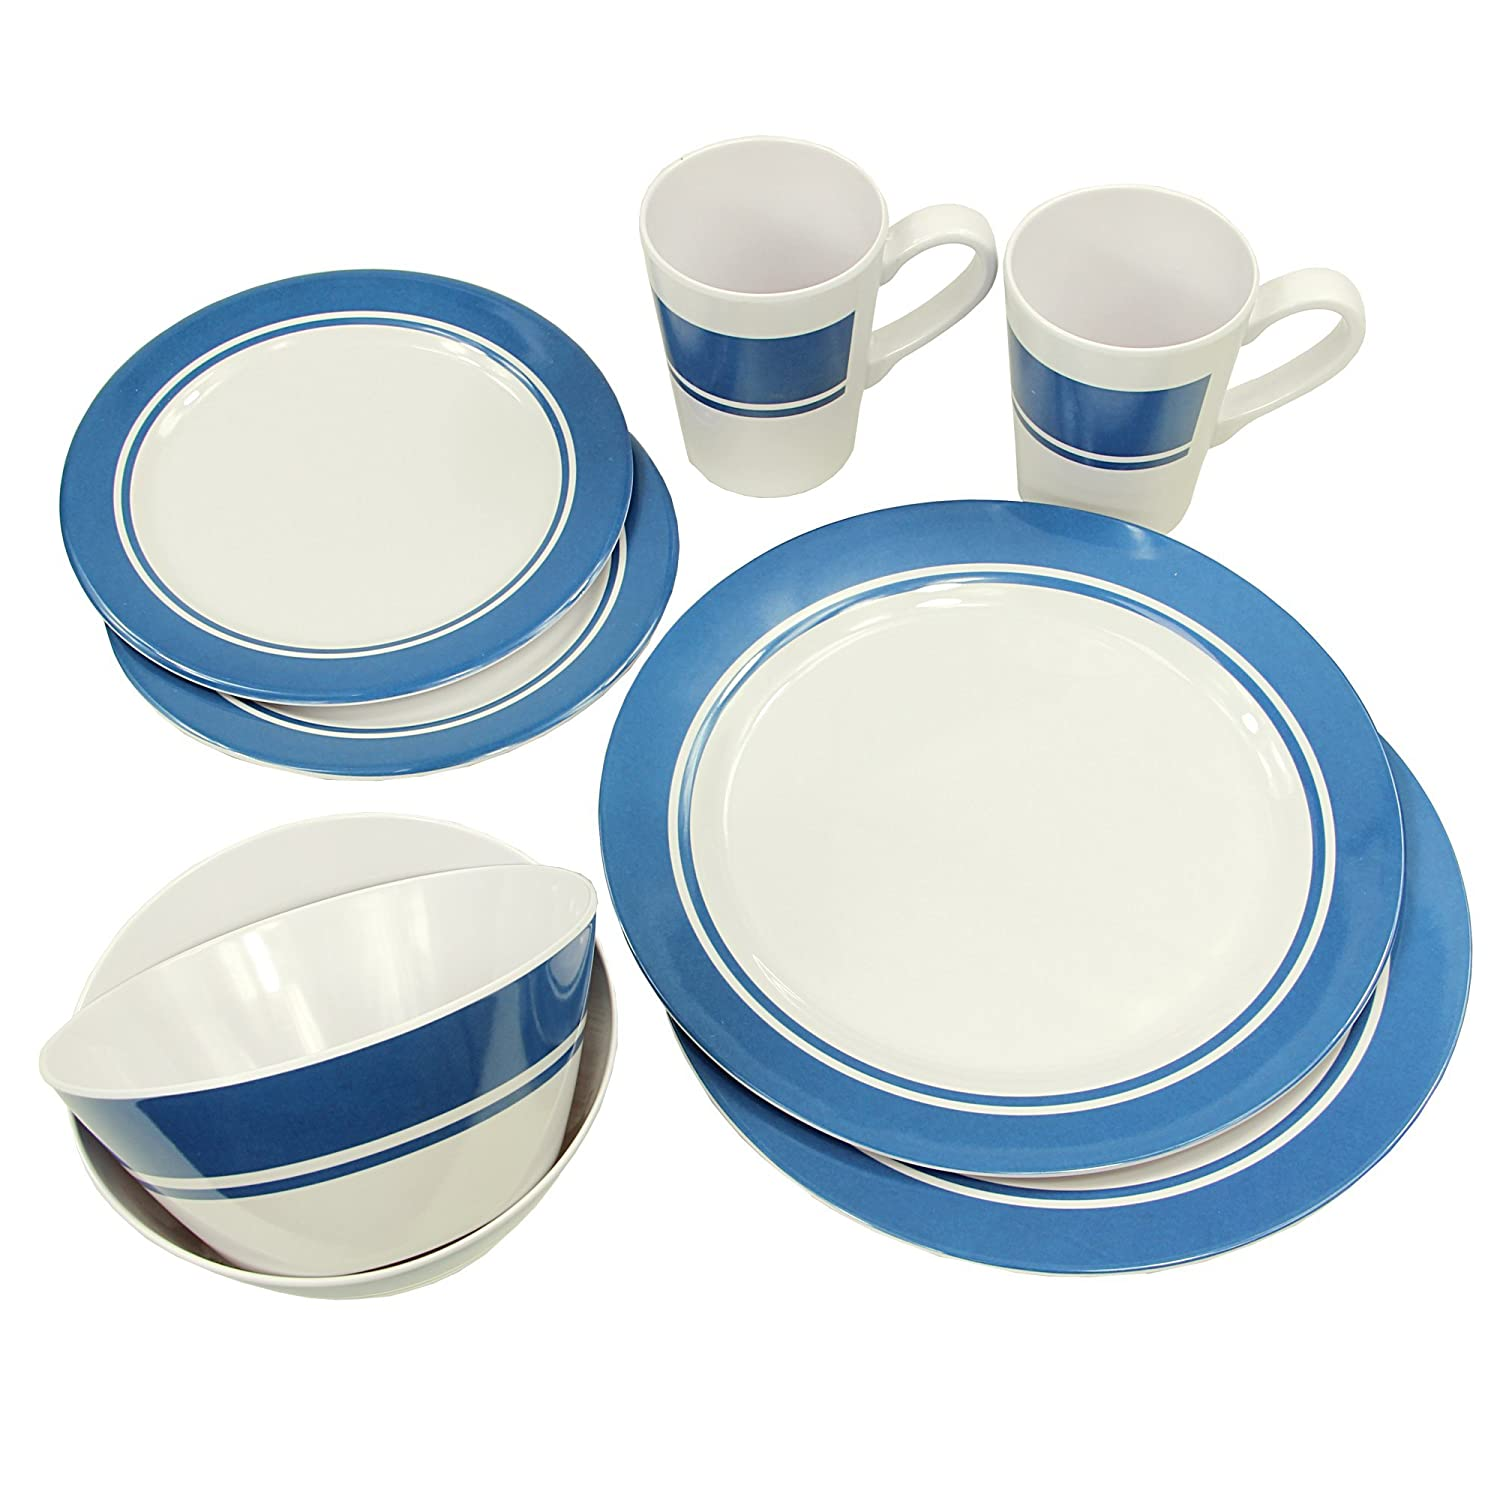 Fridani MDD 8-pieceMelamine tableware for 2 persons camping tableware for outdoor picnic/garden camping, 2 x cup 350 ml, 2 x plate Ø 25 cm, 2 x plate Ø 20 cm, 2 x bowl 650 ml. FRIJQ|#FRIDANI 4260371525823